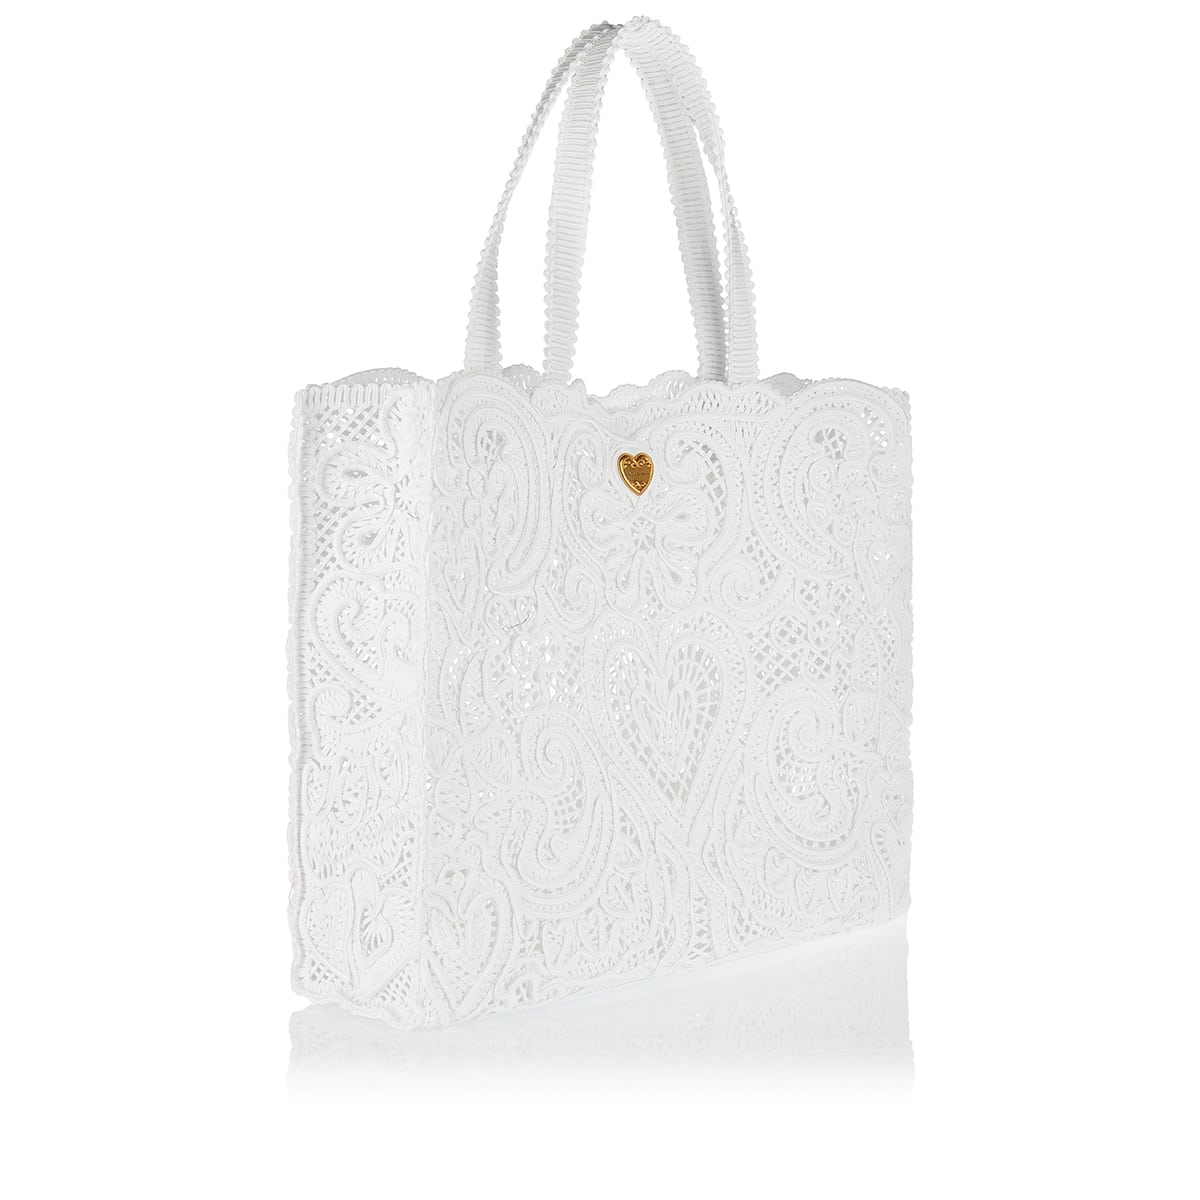 Beatrice large lace tote